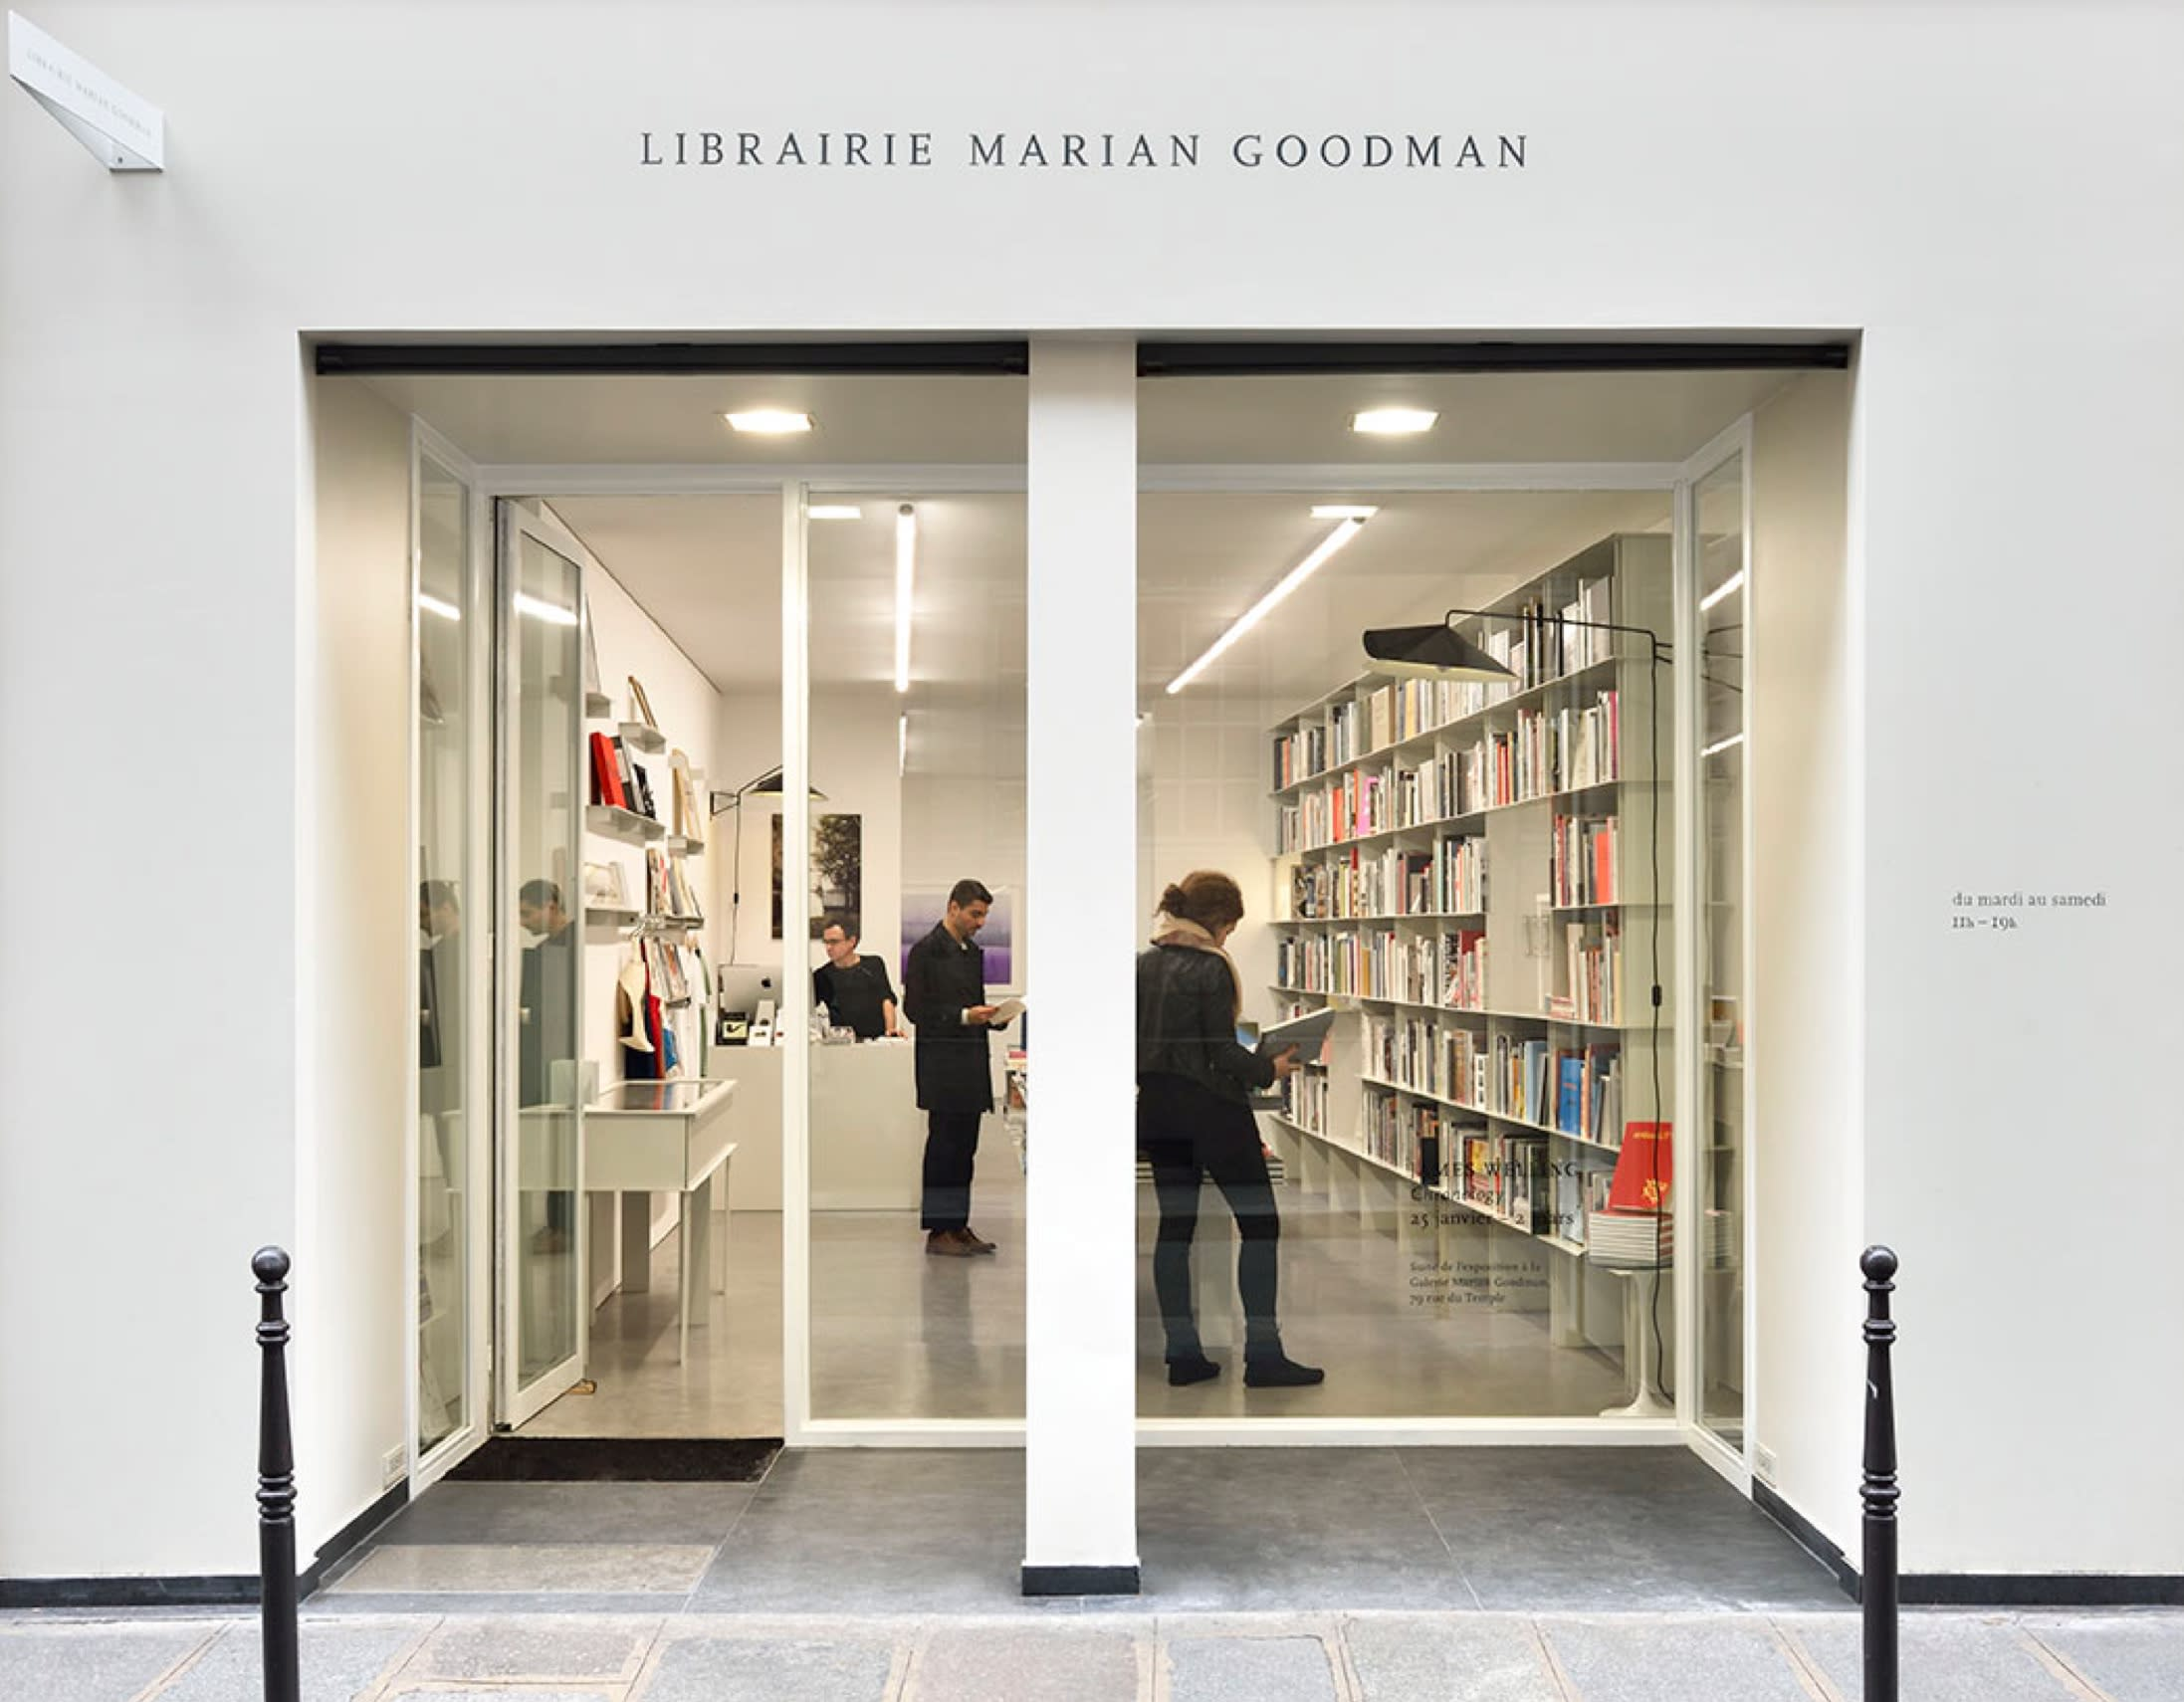 Glass doors that look into a bookstore, with the words Librairie Marian Goodman stenciled in black above the white-walled storefront.